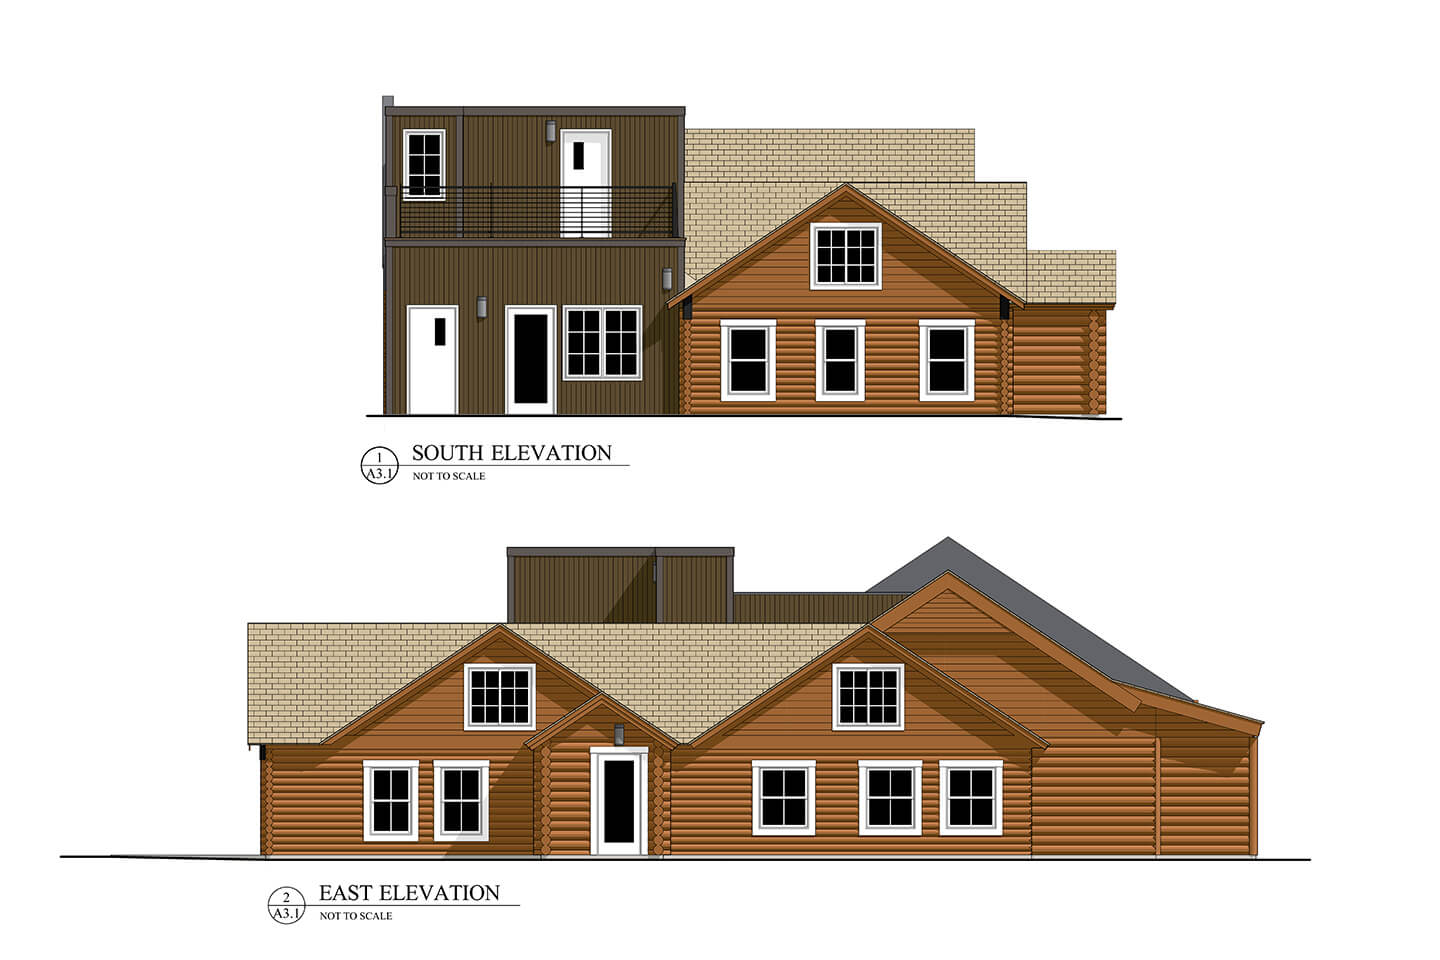 2D rendering of the Coe Cabin elevations